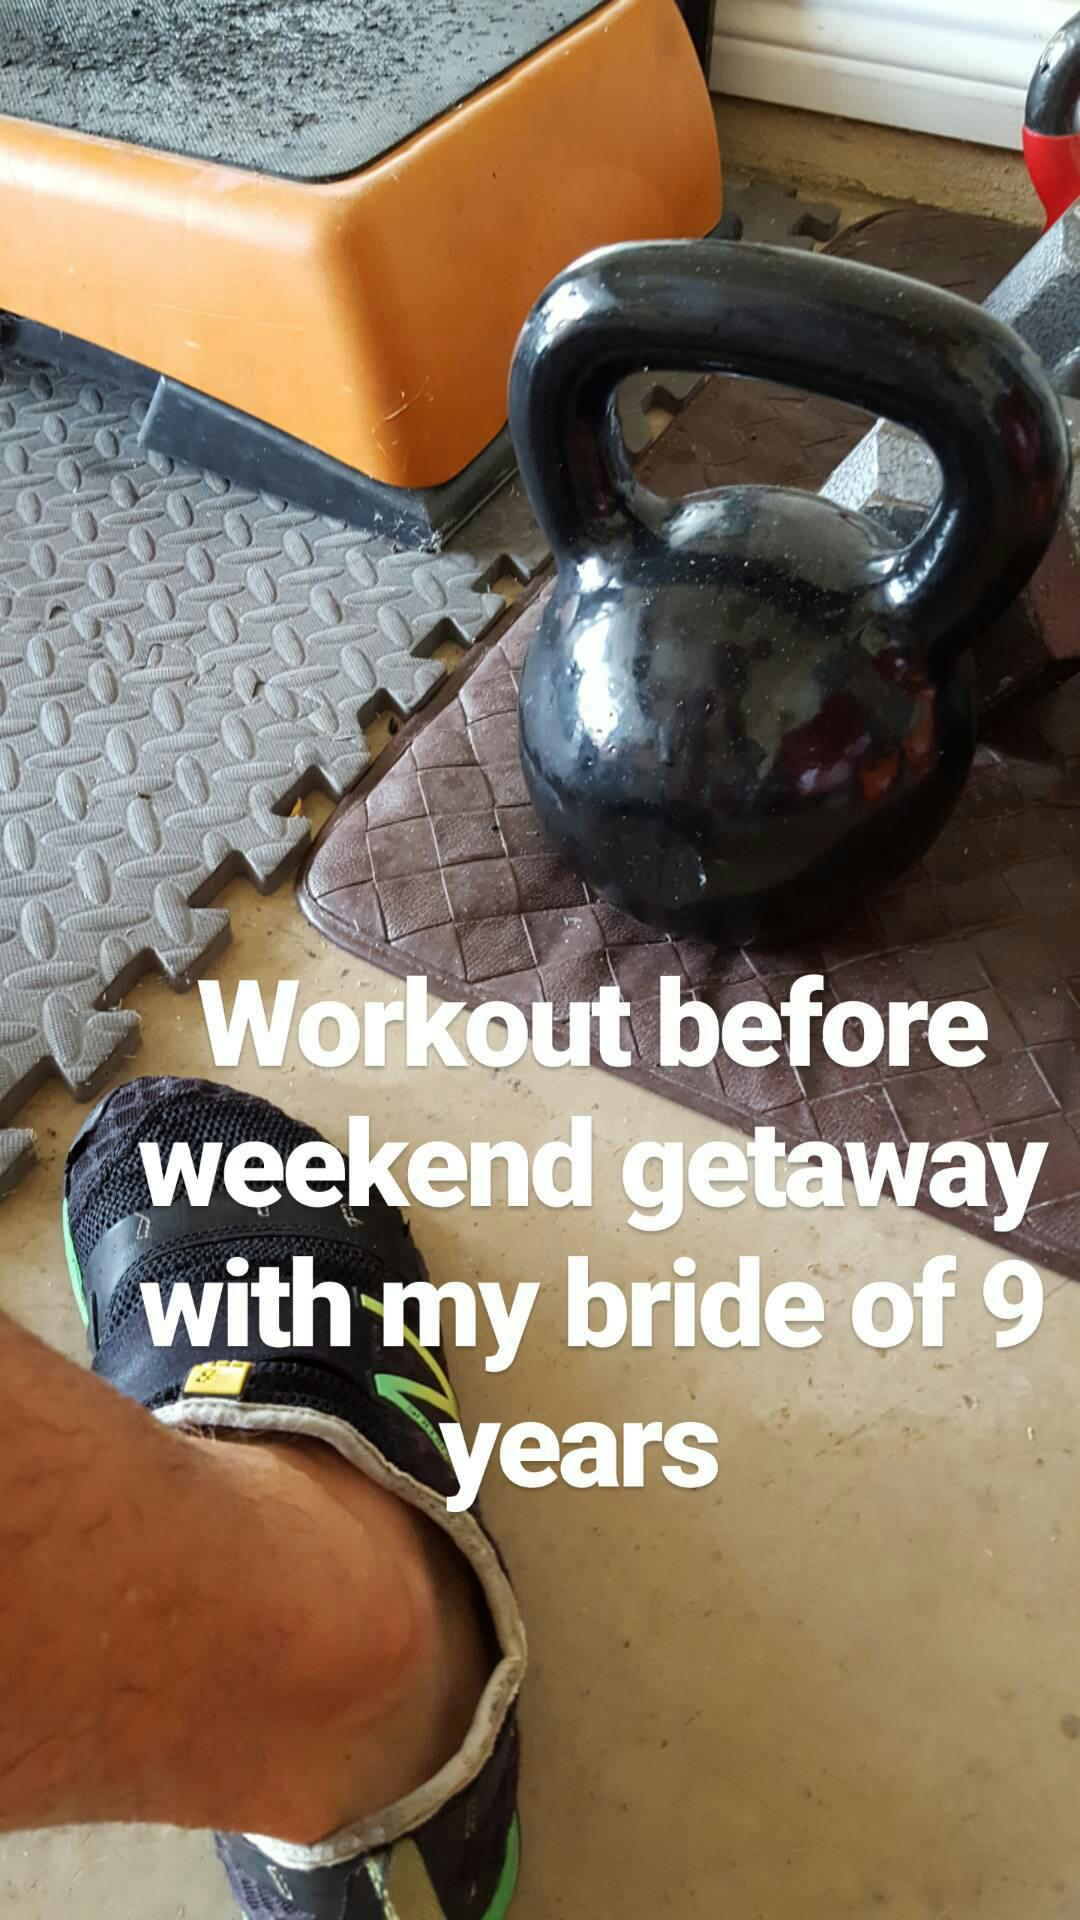 fitness, workout, lifting, instagram stories